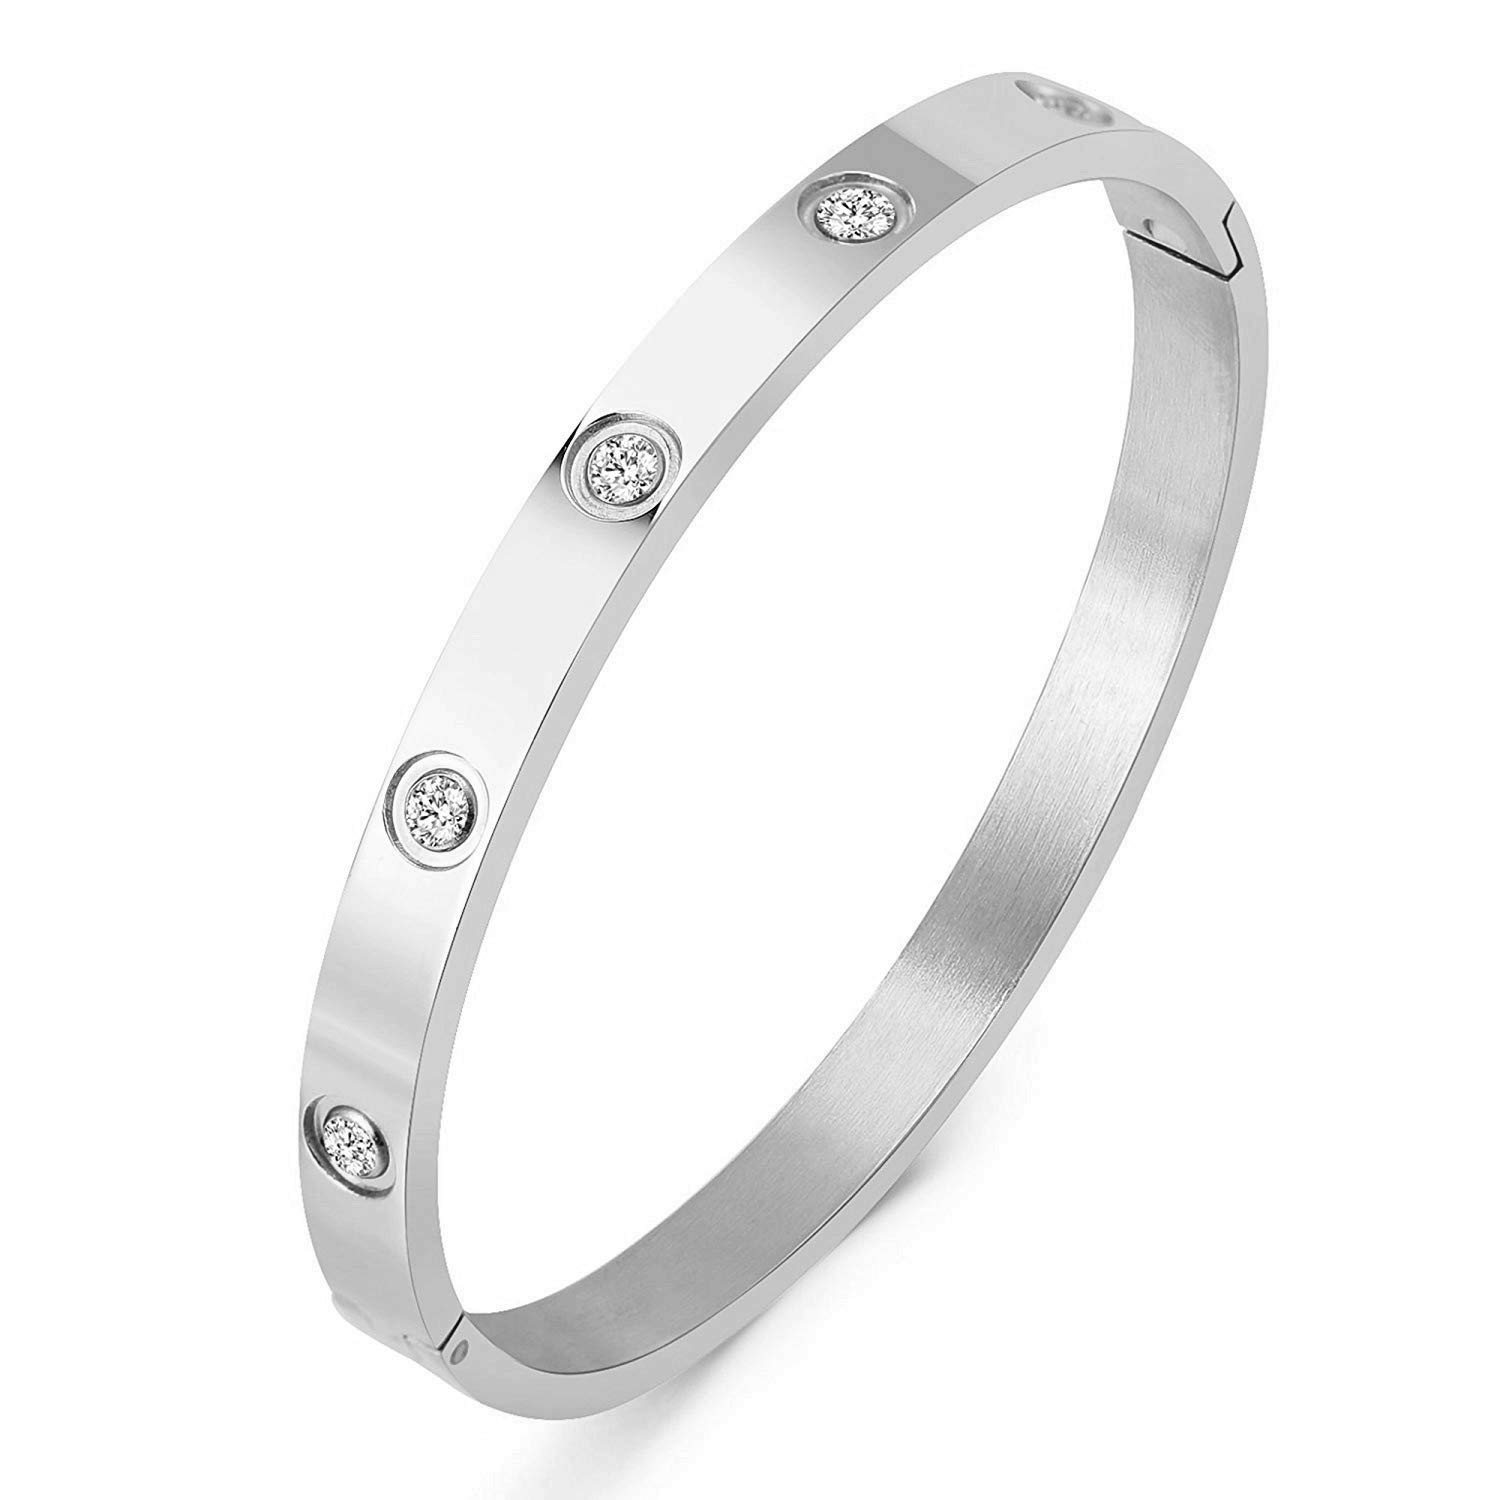 Z.RACLE Titanium Steel Bangle Bracelets for Women Bangle Bracelet Set in Heart and CZ Stone Jewelry Fits 6.5 Inch Wrists